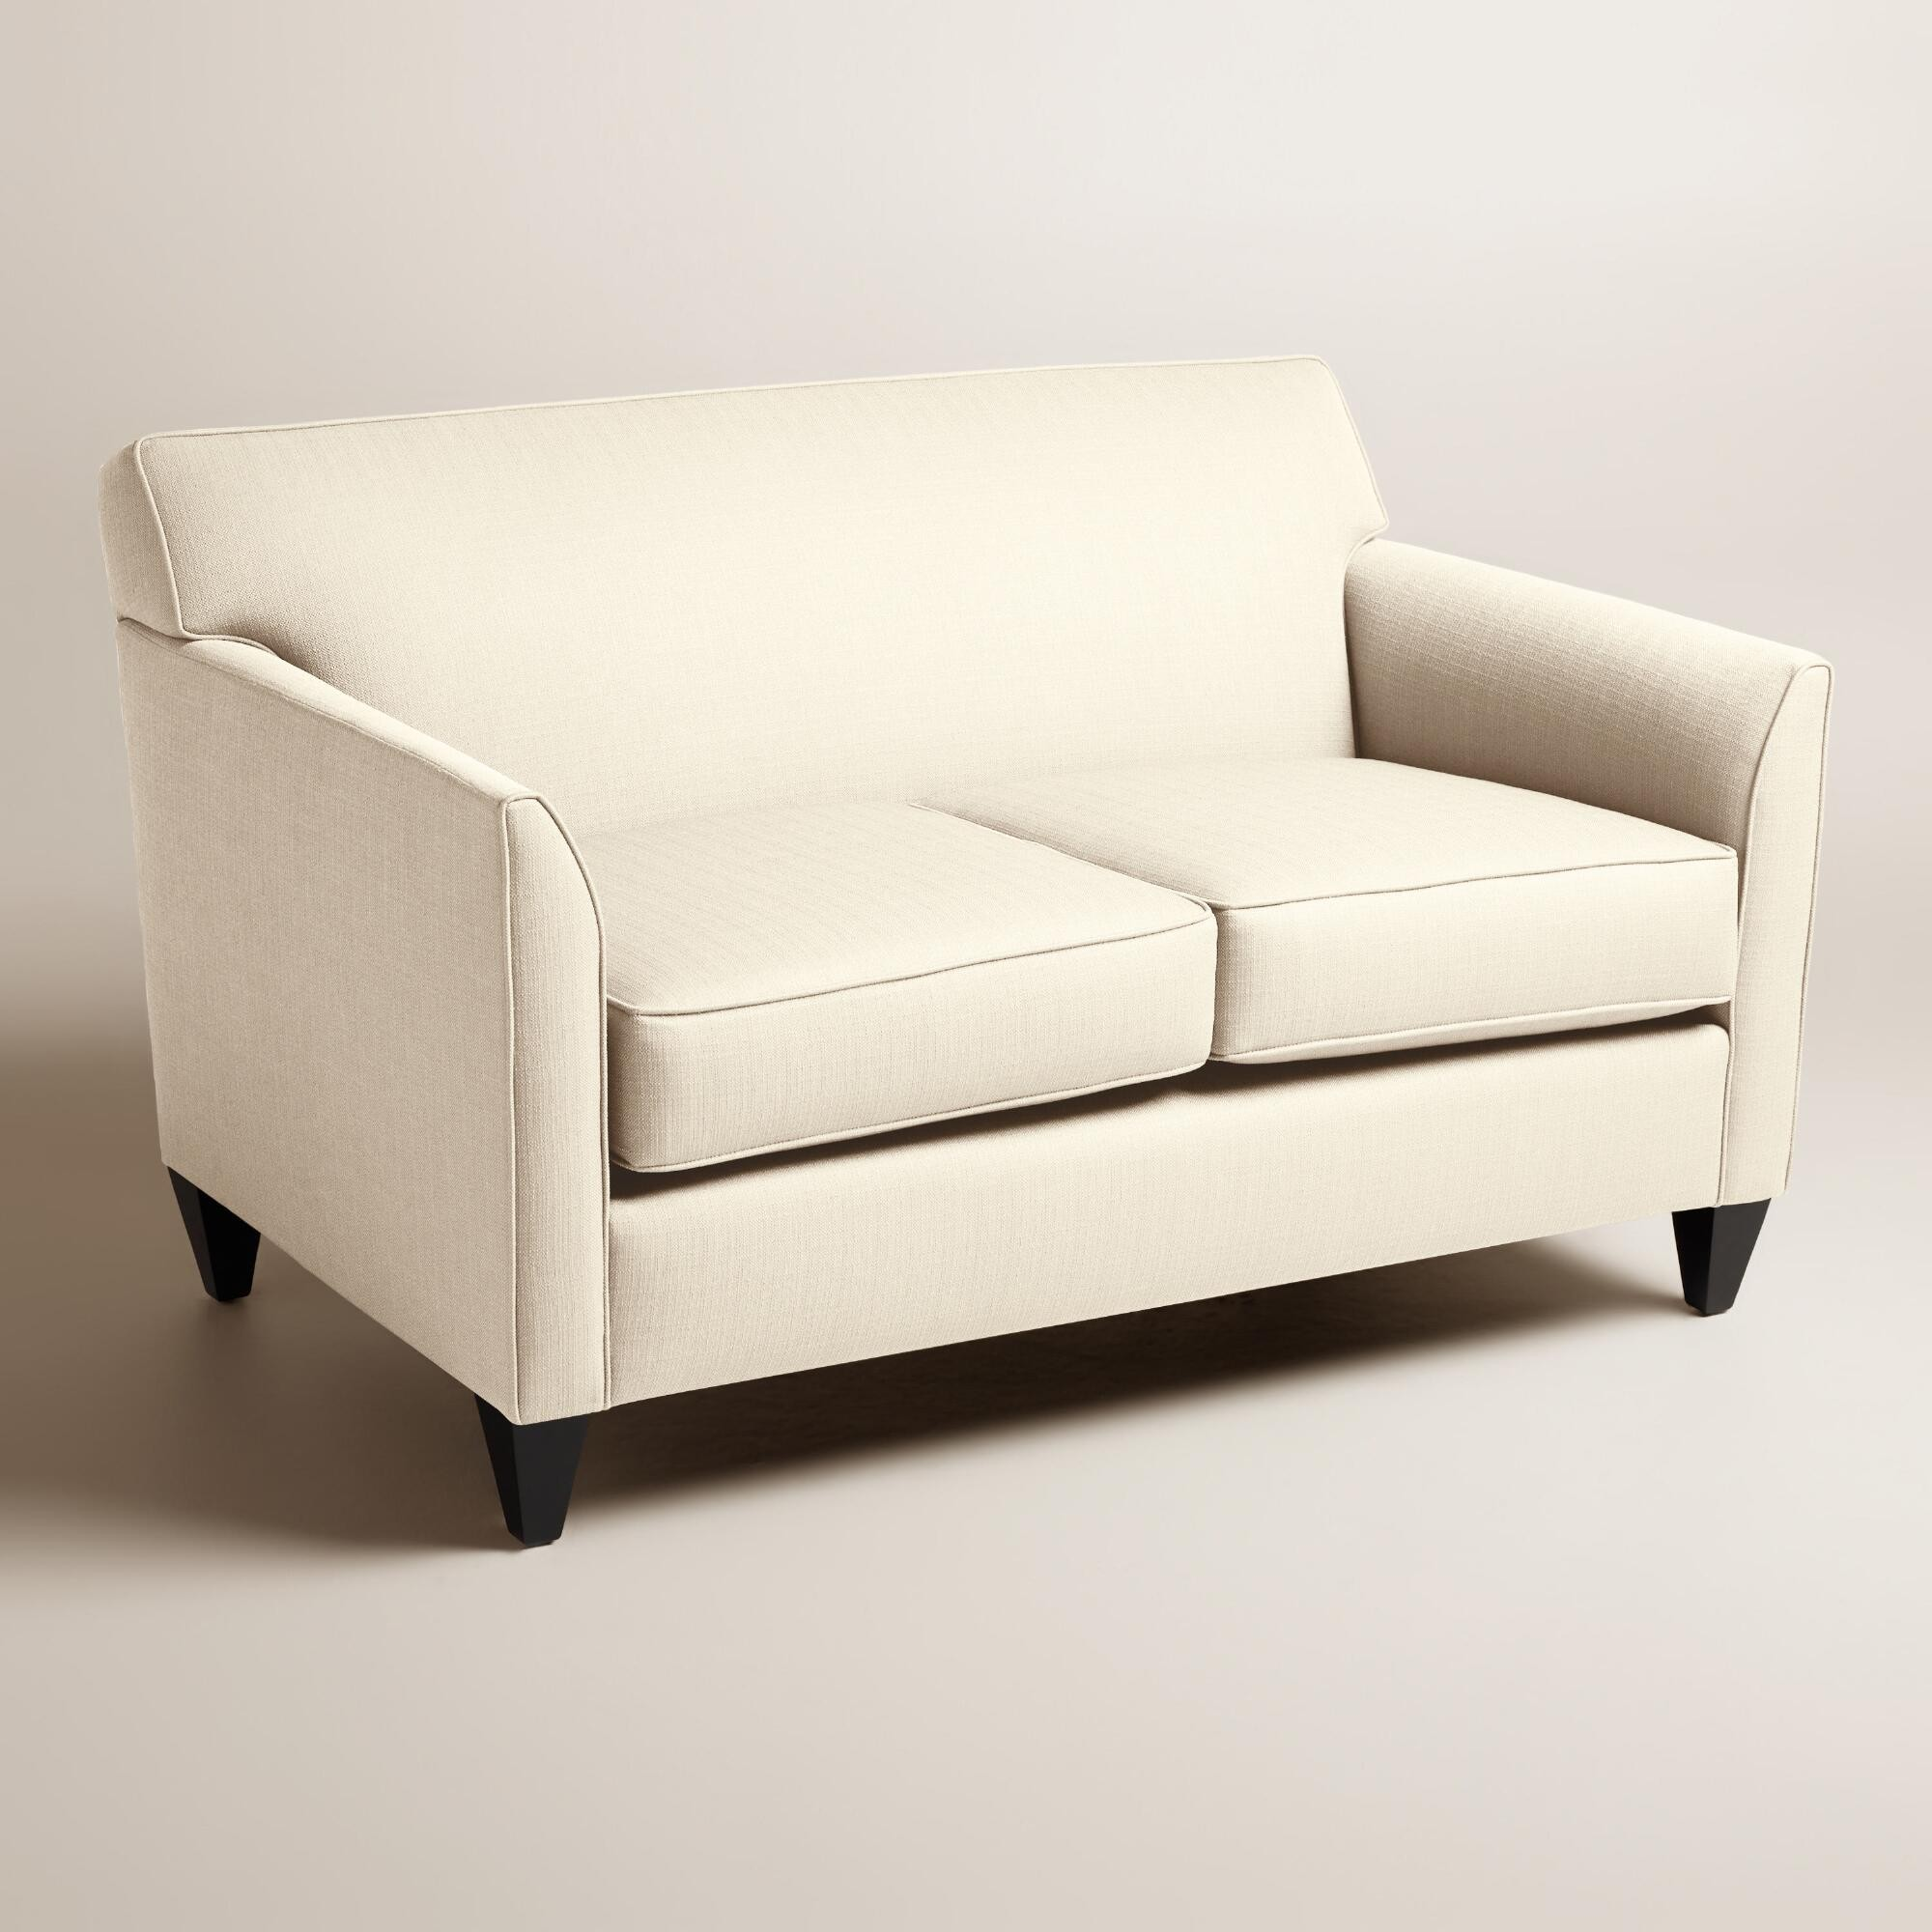 Strange Loveseat For The Master Bedroom Our Southern Home Complete Home Design Collection Barbaintelli Responsecom